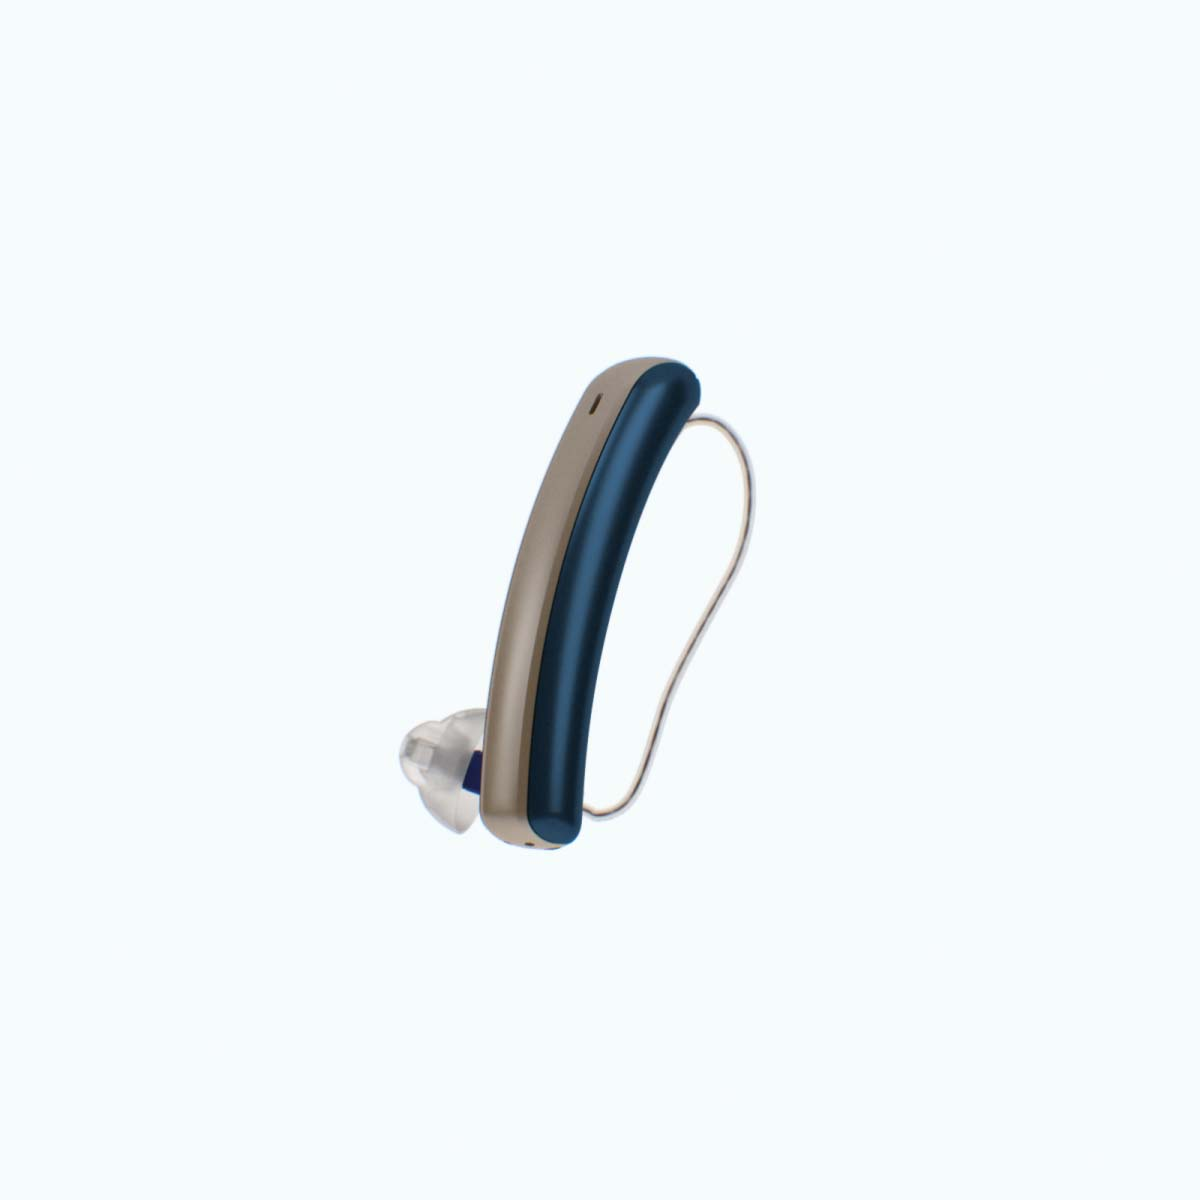 Innovative MEENERGY™ iRIC™ hearing aid